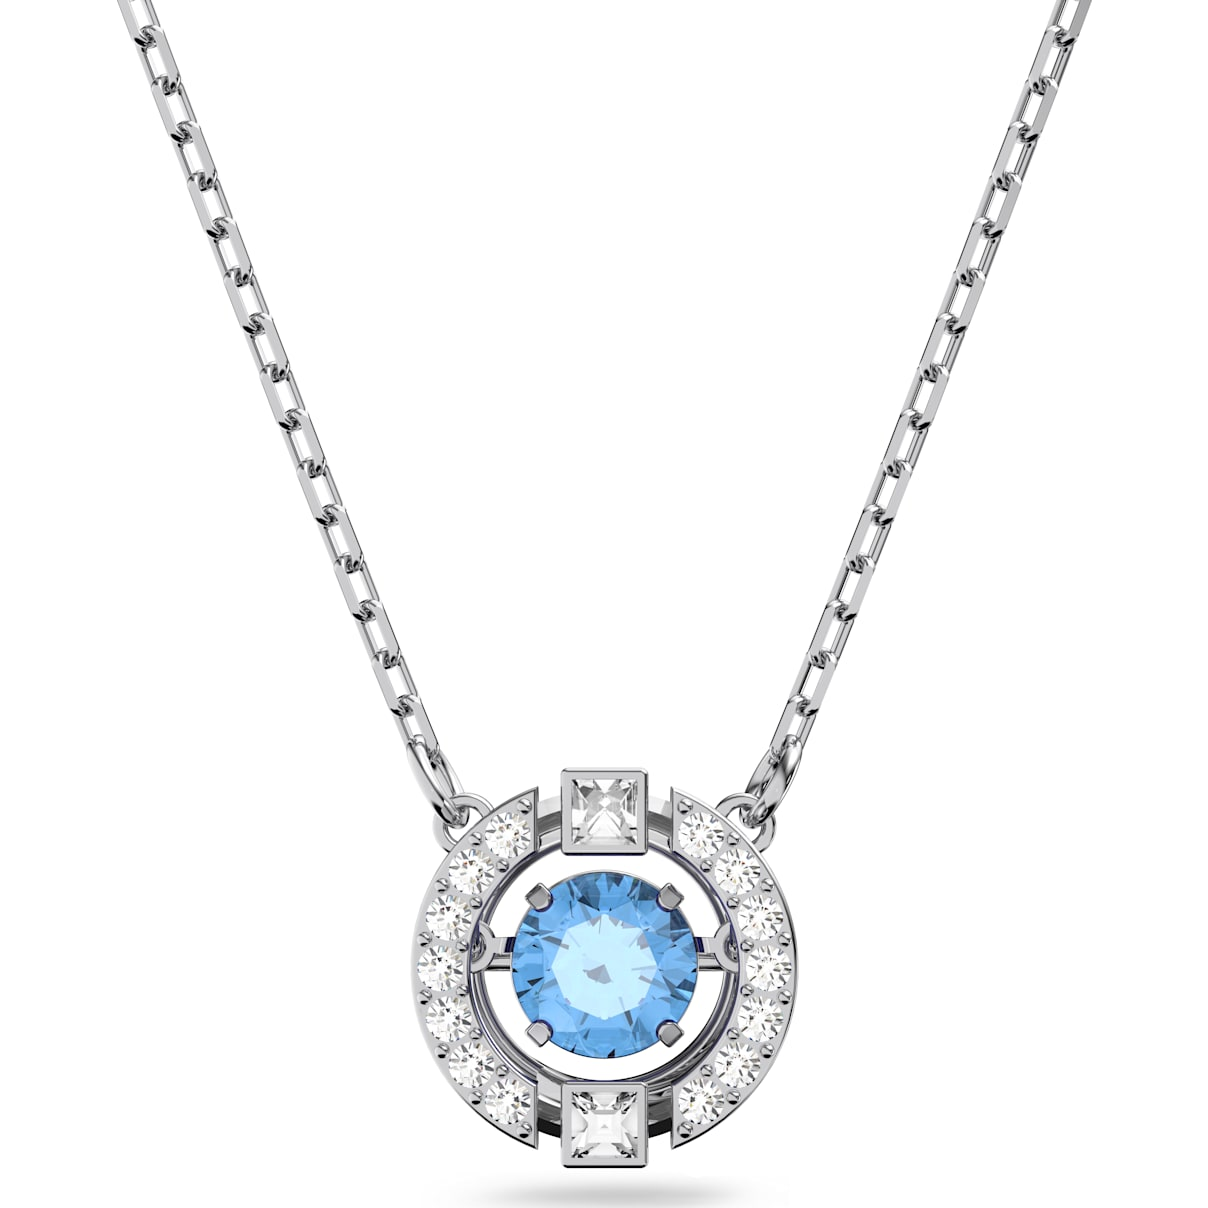 Swarovski Swarovski Sparkling Dance Round Necklace, Blue, Rhodium plated